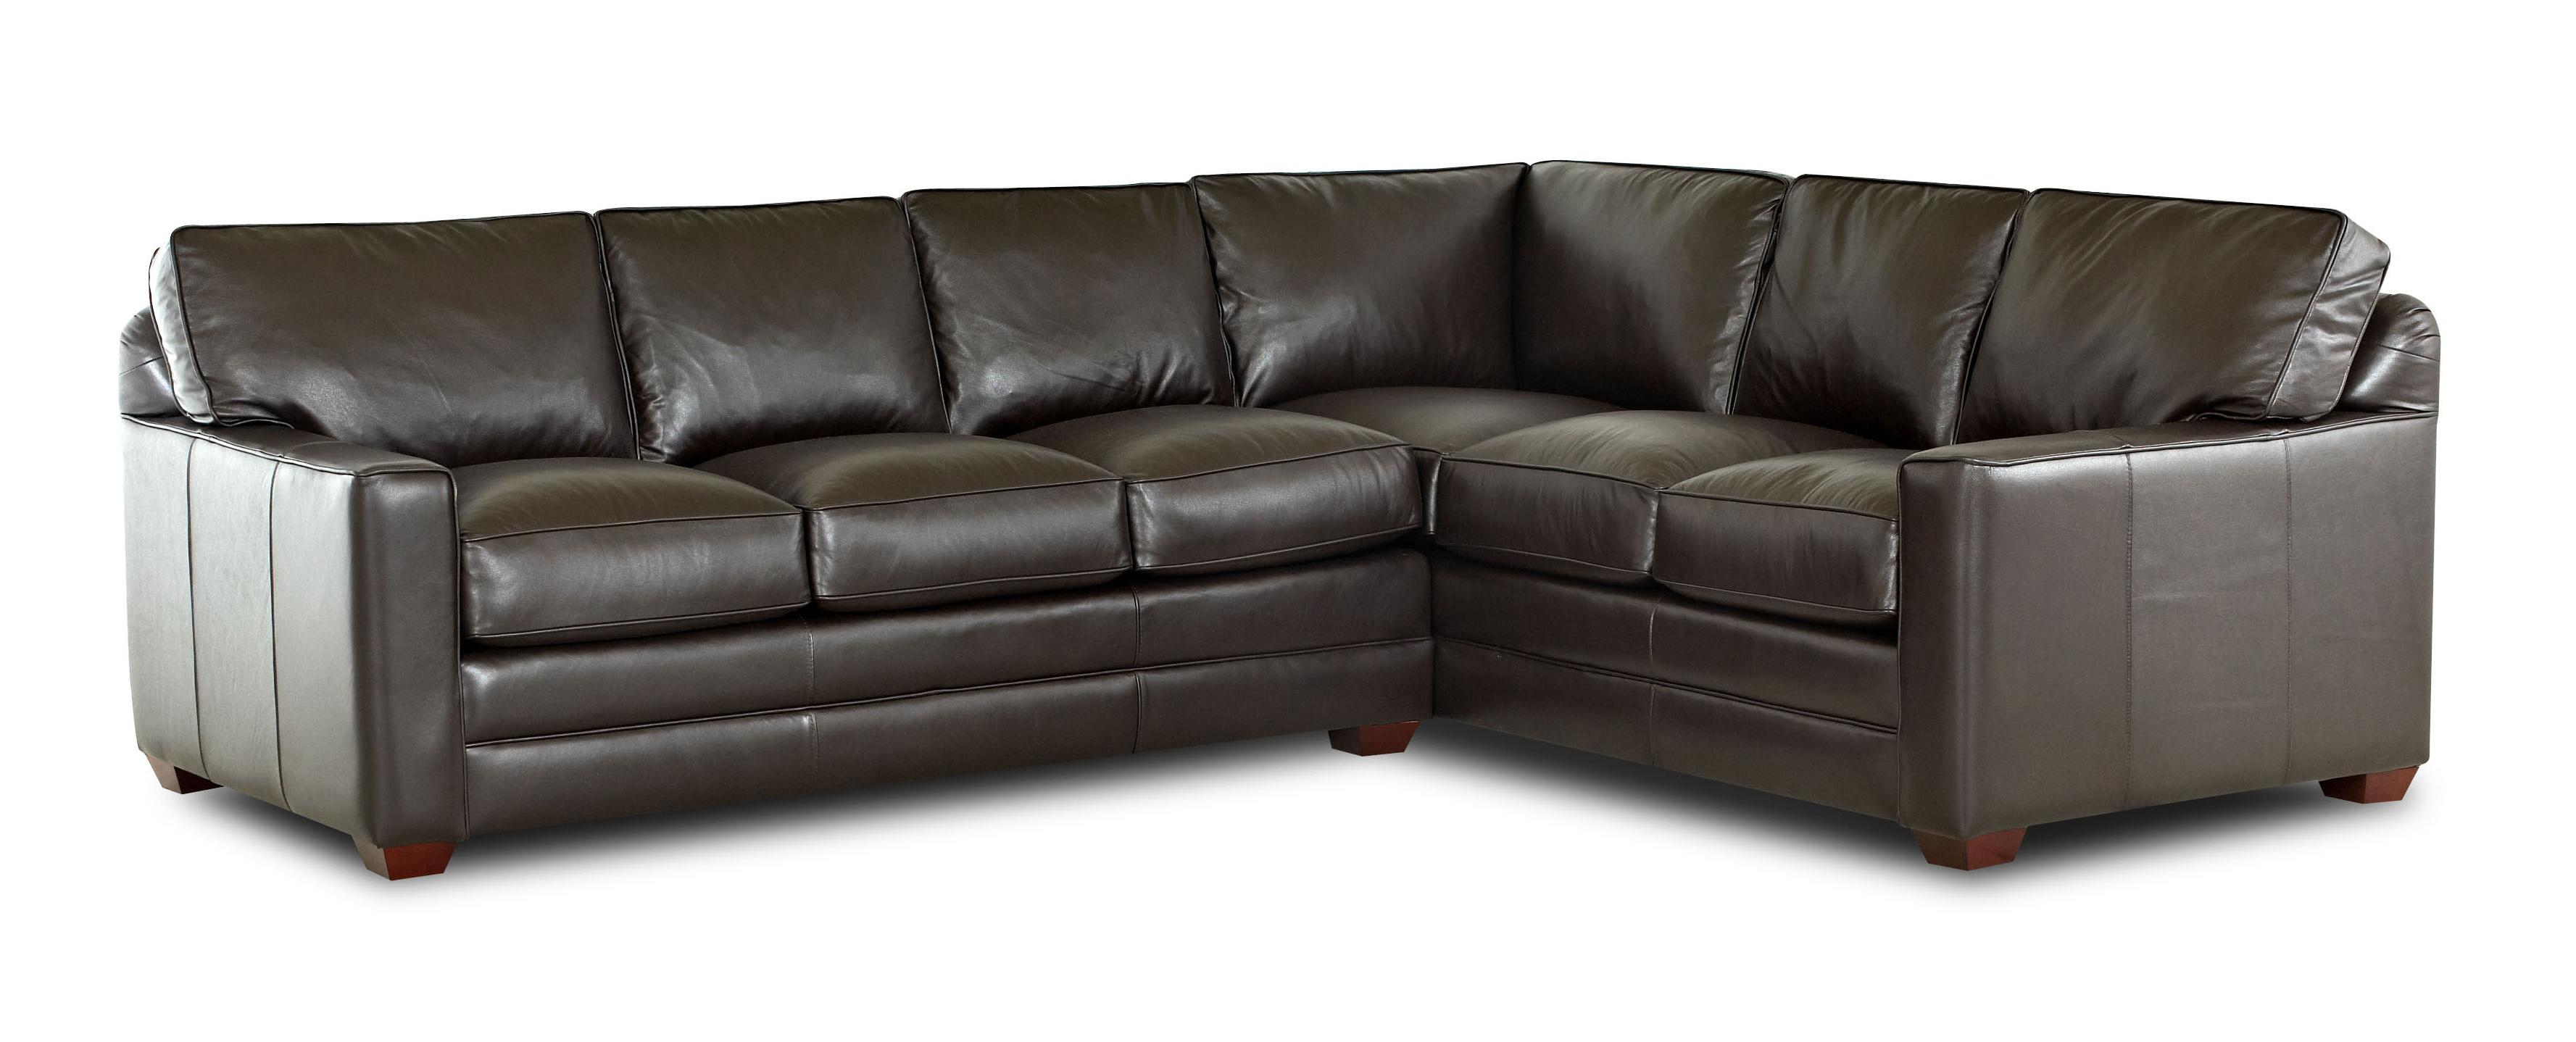 Pantego 2 Piece Sectional Sofa w/ RAF Corner by Klaussner at Northeast Factory Direct